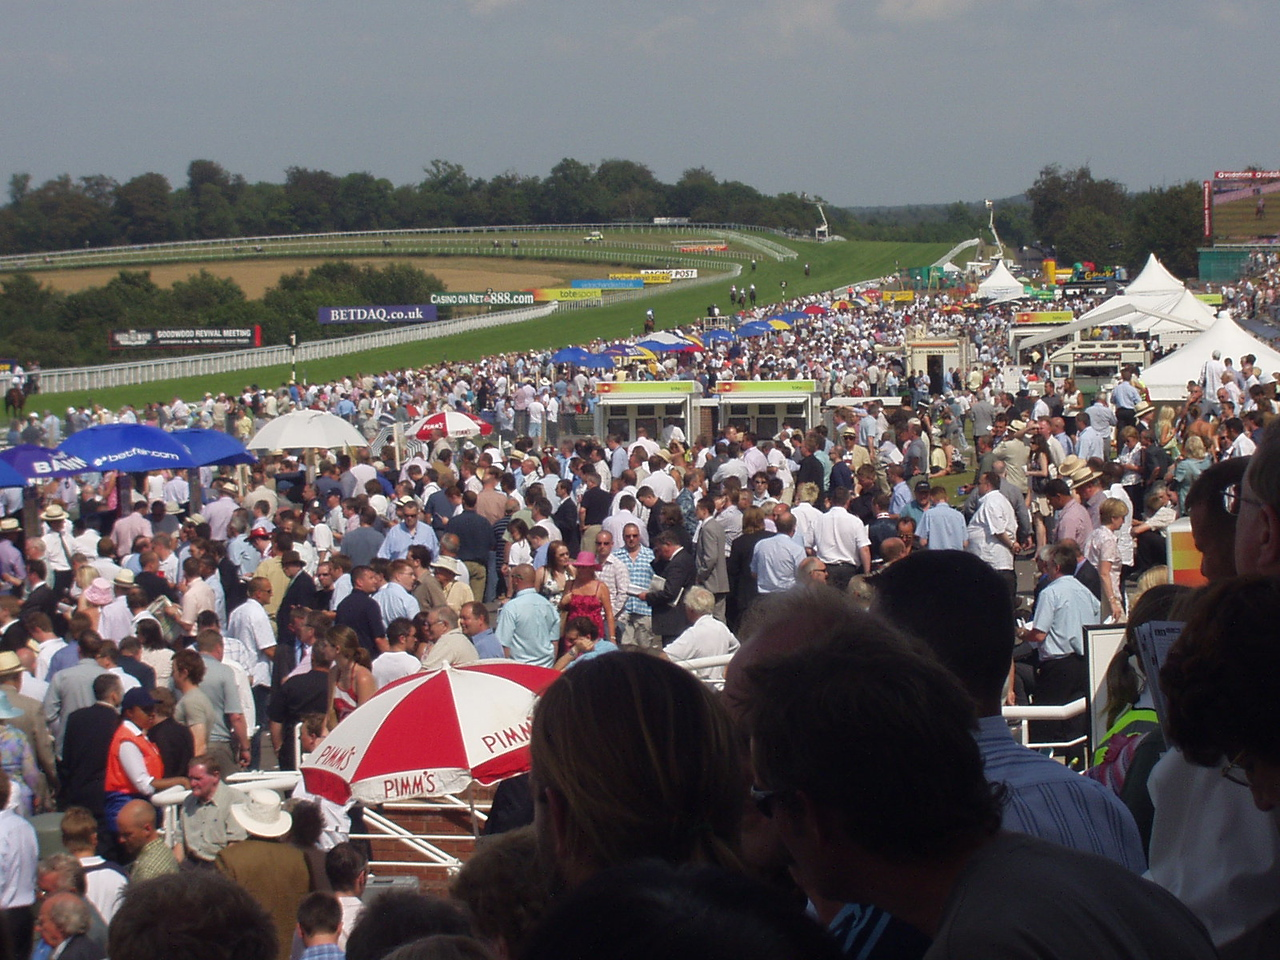 Crowds at the racecourse